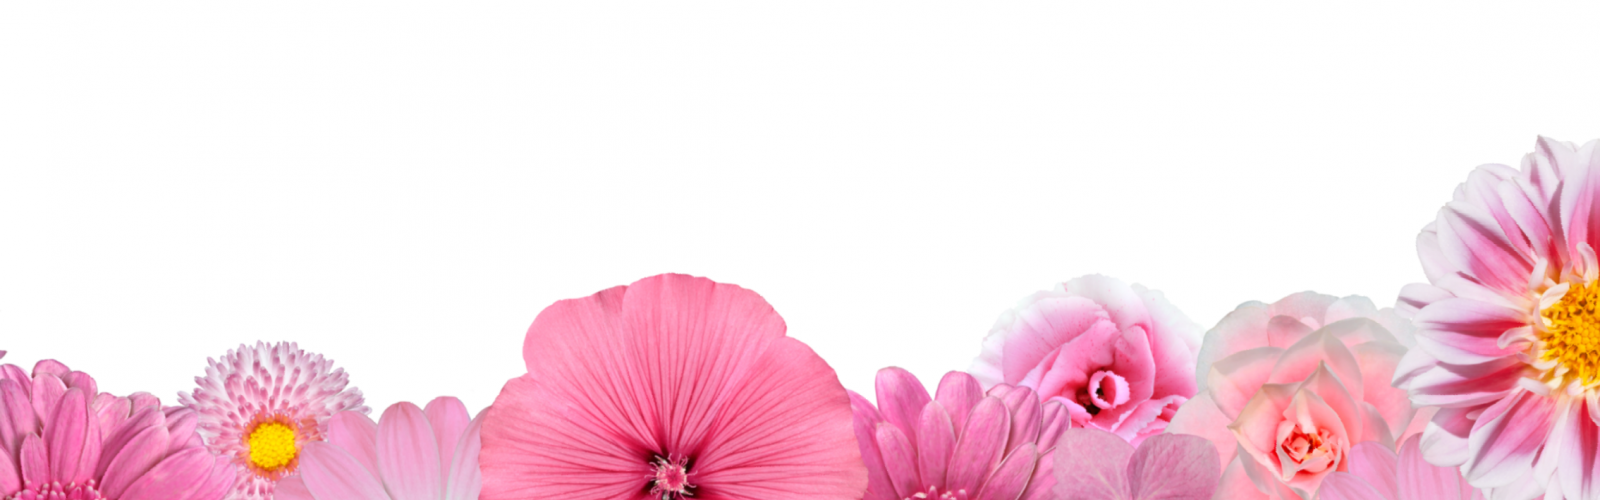 a group of pink flowers